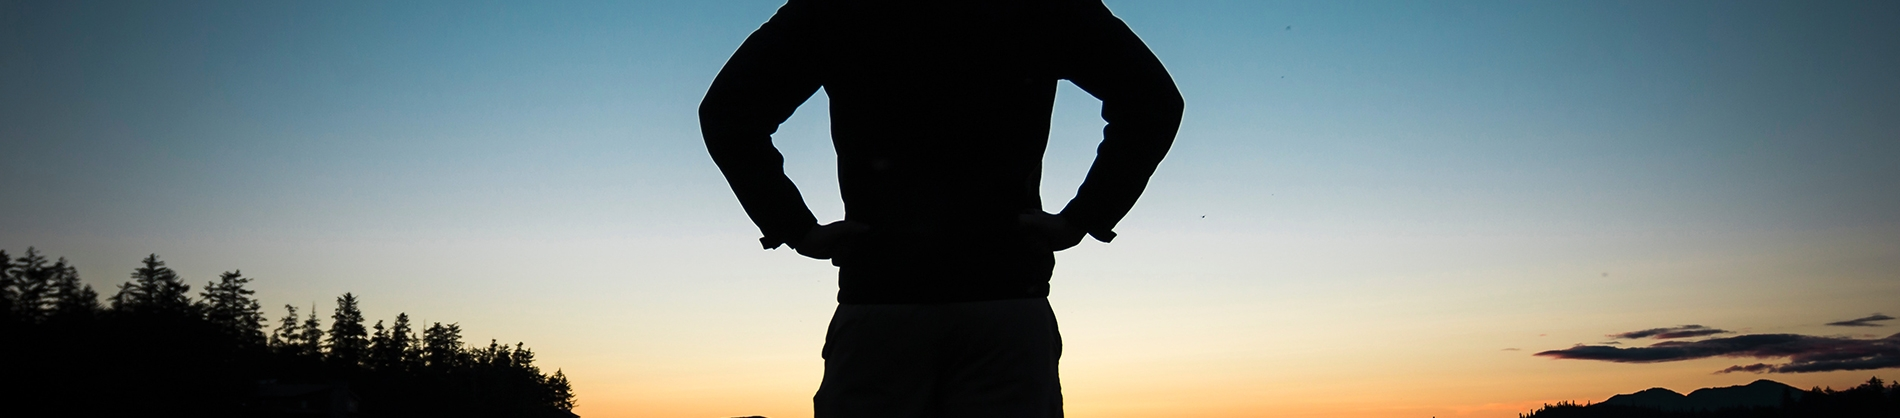 A silhouette of a man stood in front of a sunrise